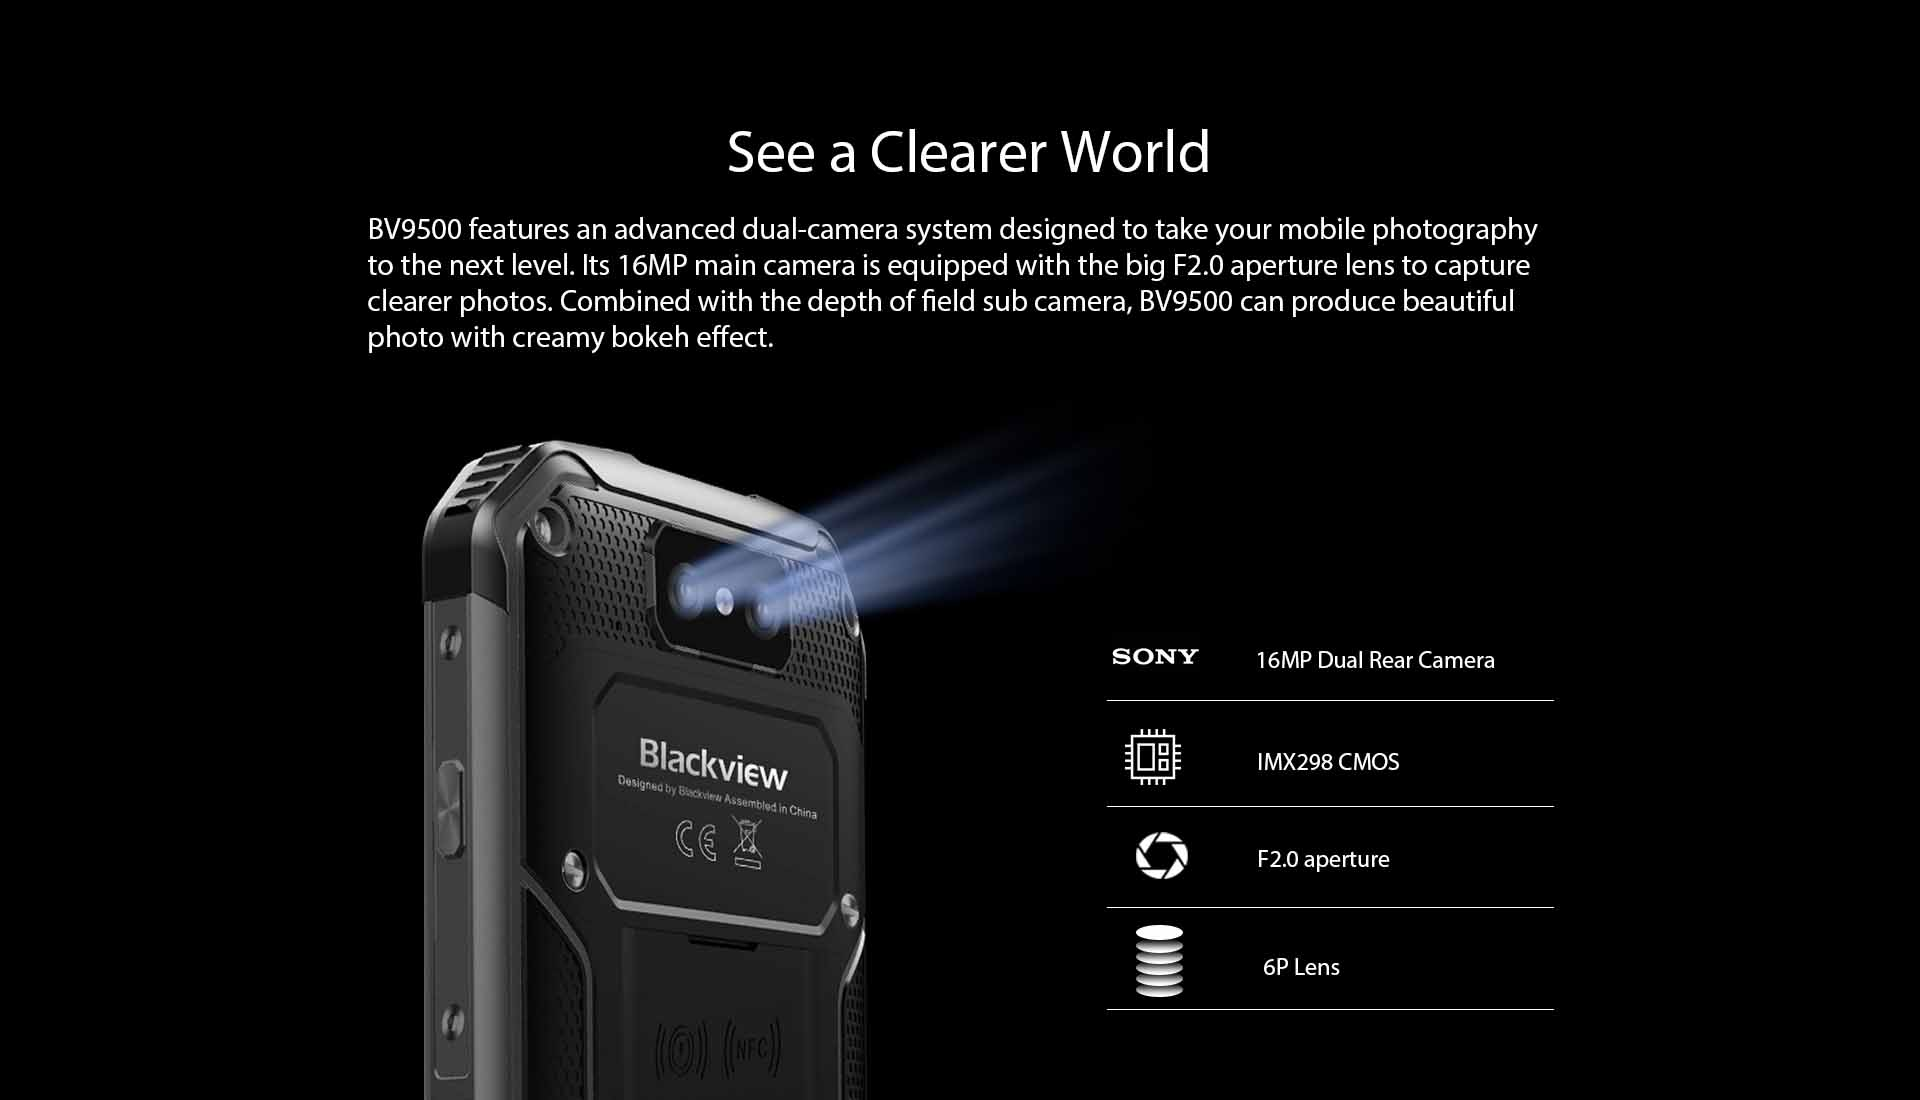 Blackview BV9500 rugged phone